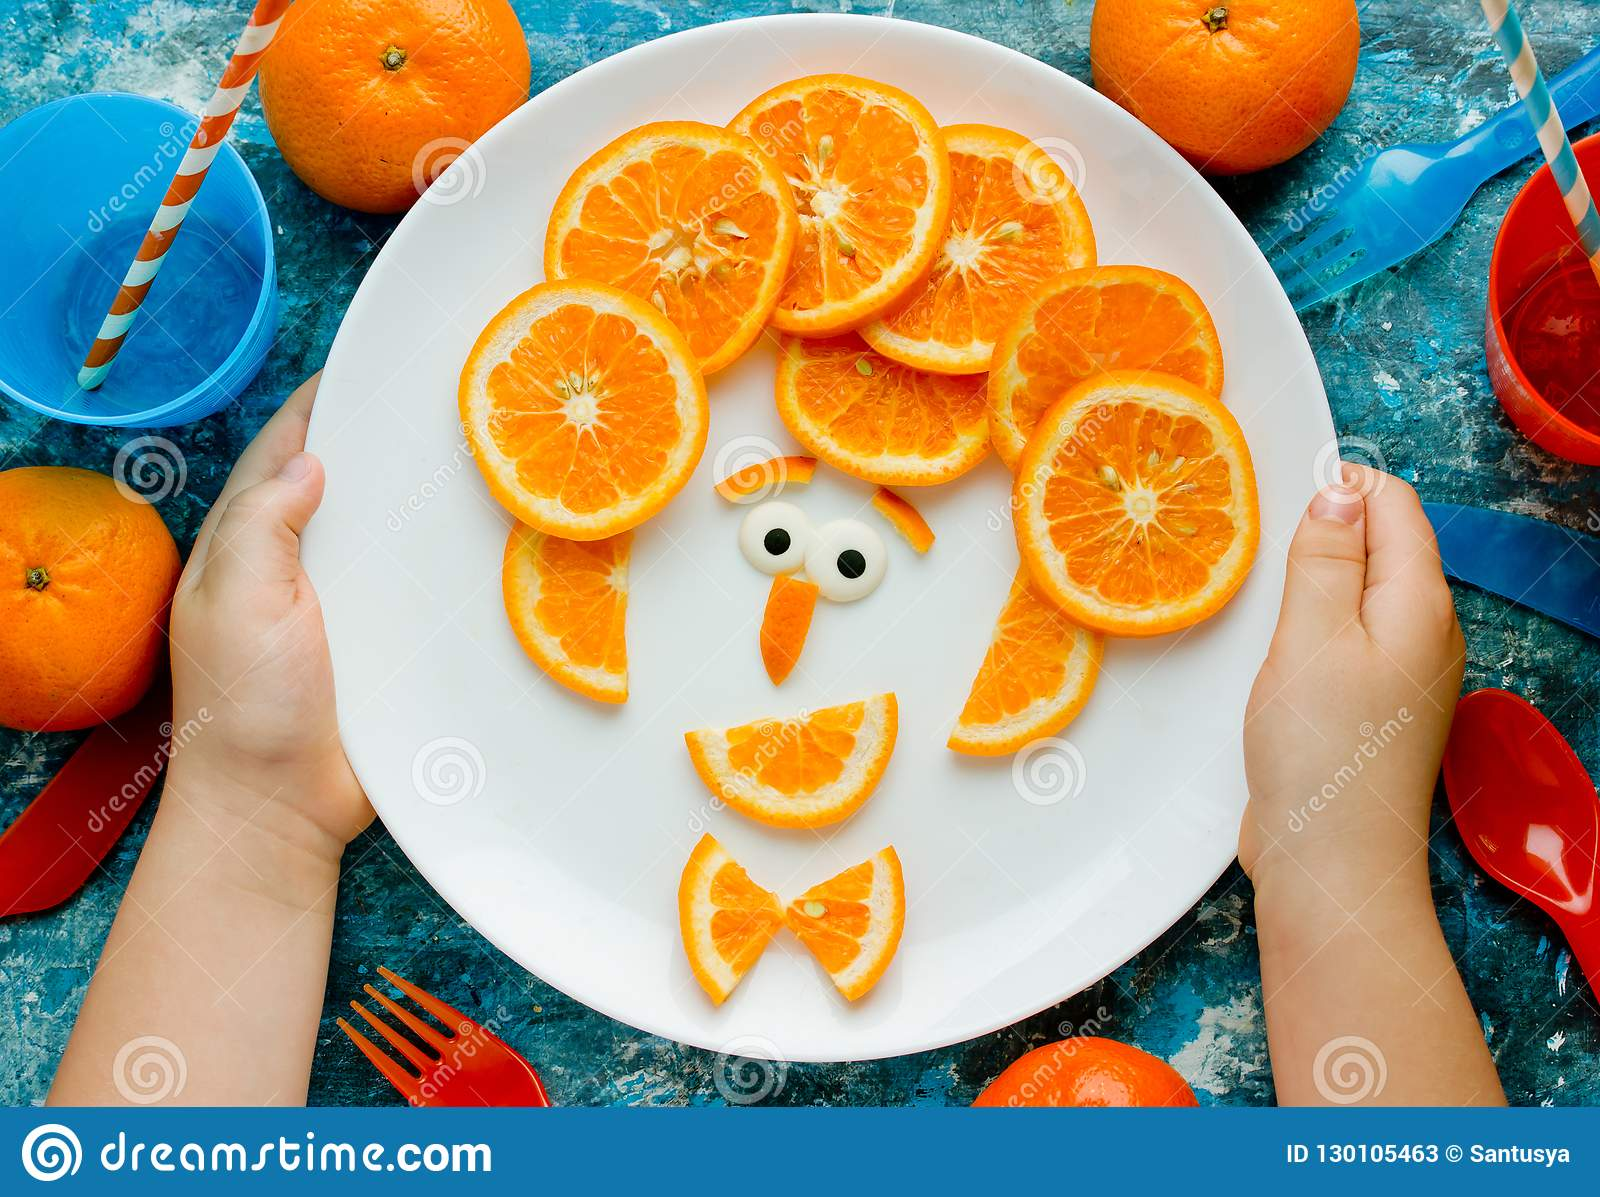 Funny Man Face Fruit Plate Creative Idea For Healthy Snack Or Dessert For Kids Stock Image Image Of Craft Antioxidant 130105463